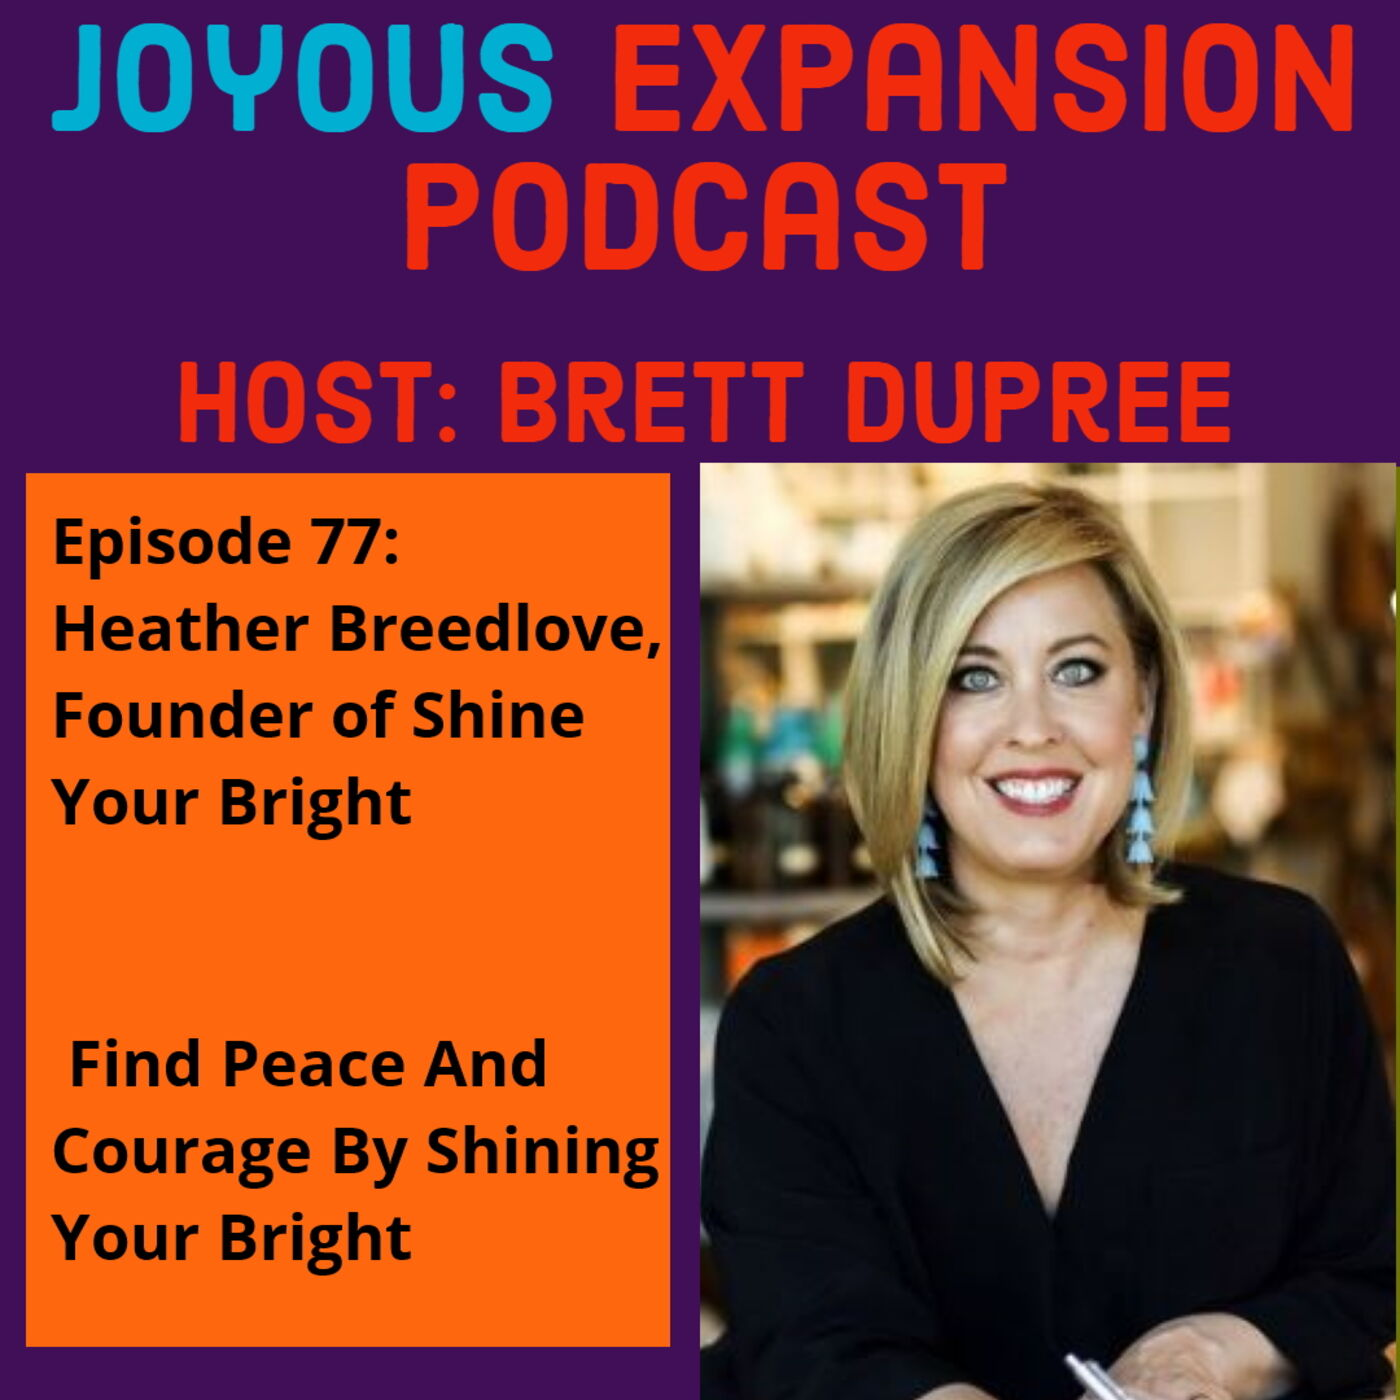 Joyous Expansion #77 - Heather Breedlove - How to Shine Your Bright